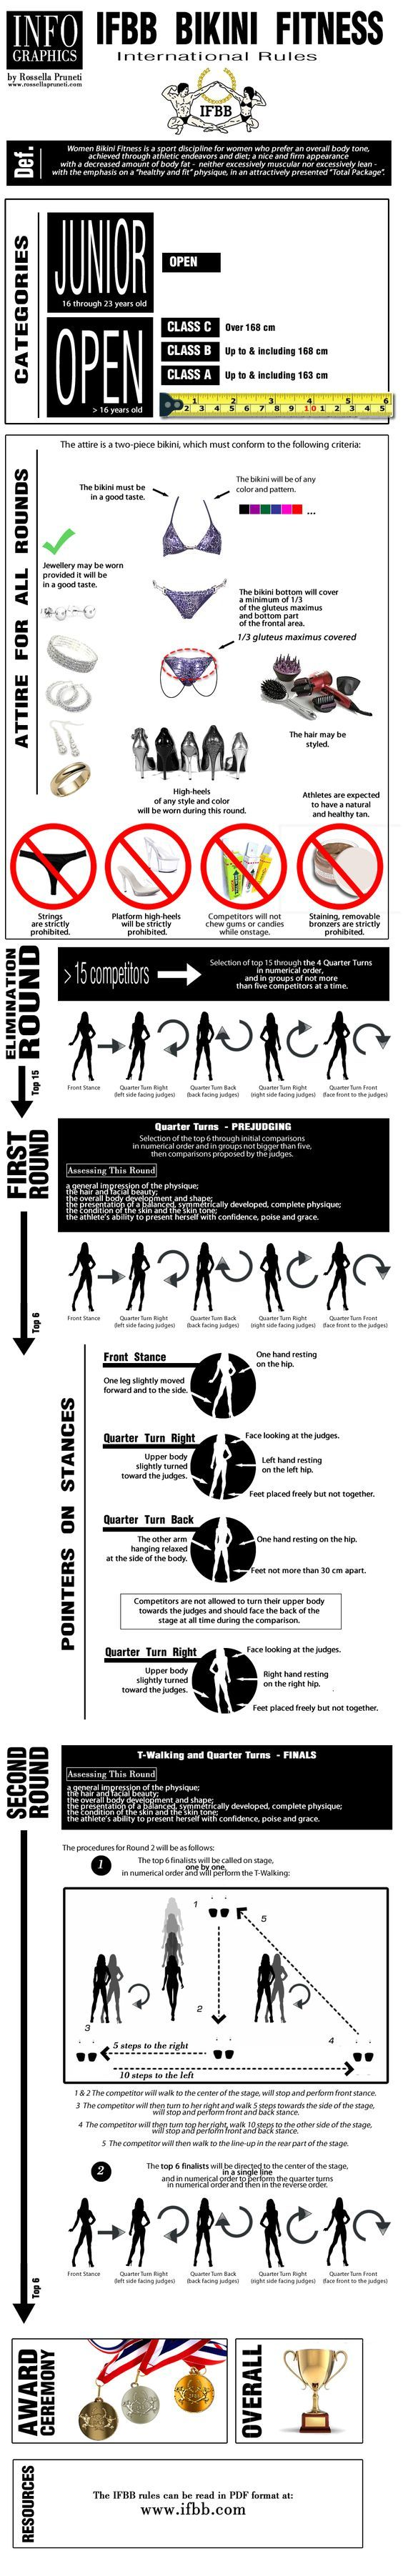 The IFBB rules for the Bikini Fitness competitions at international events.